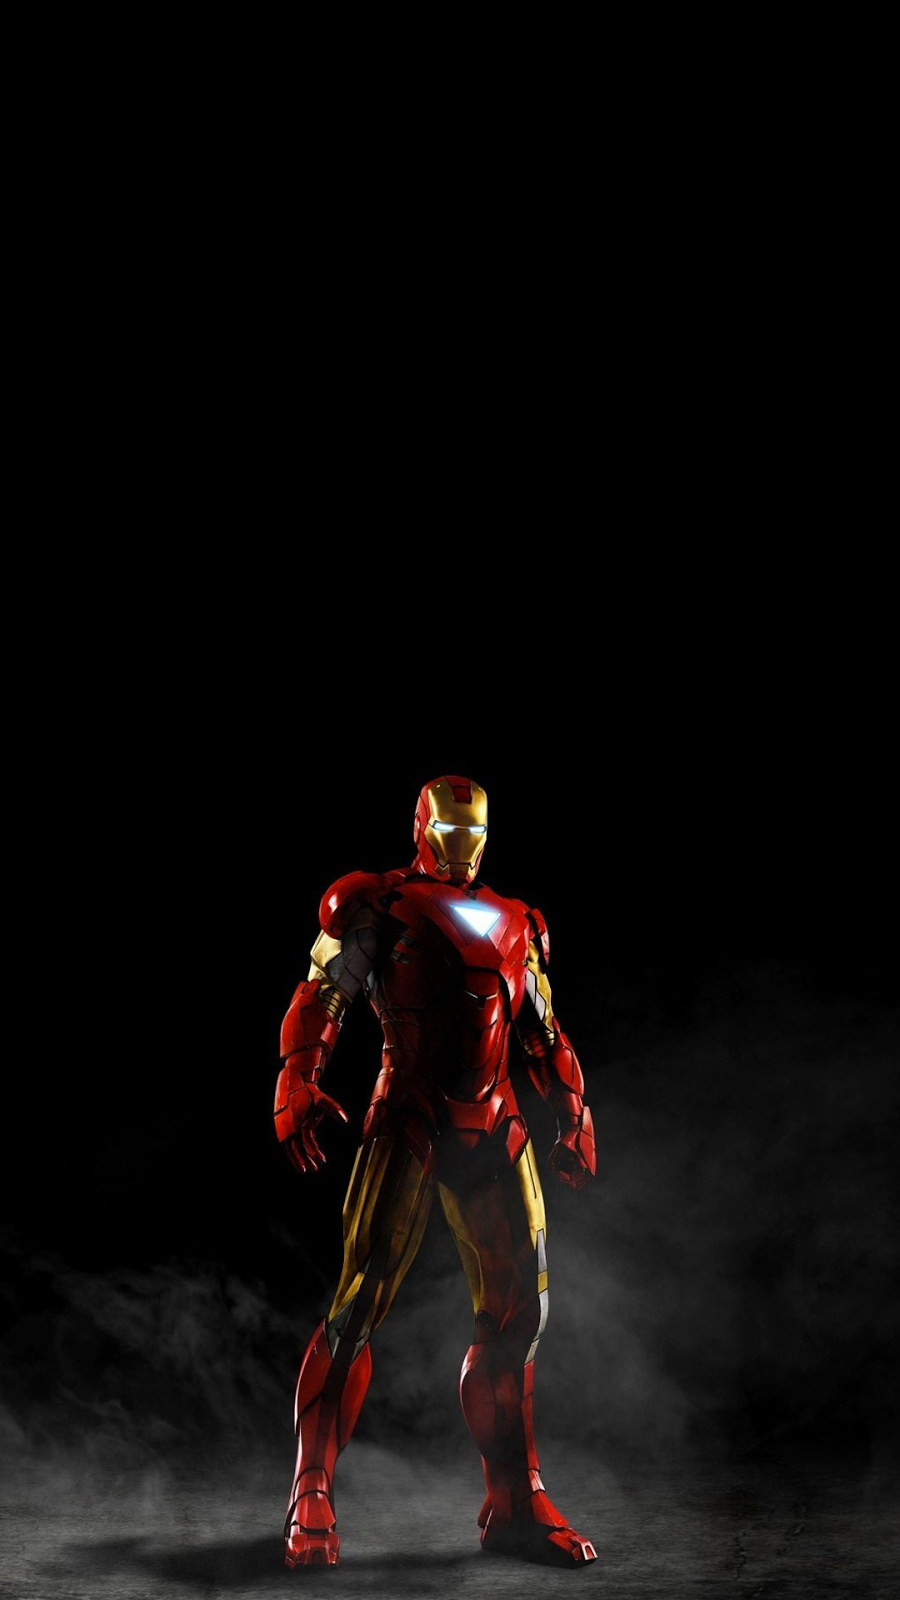 Be Linspired Free Iphone 6 Wallpaper Backgrounds Iron Man Wallpaper Iron Man Man Wallpaper